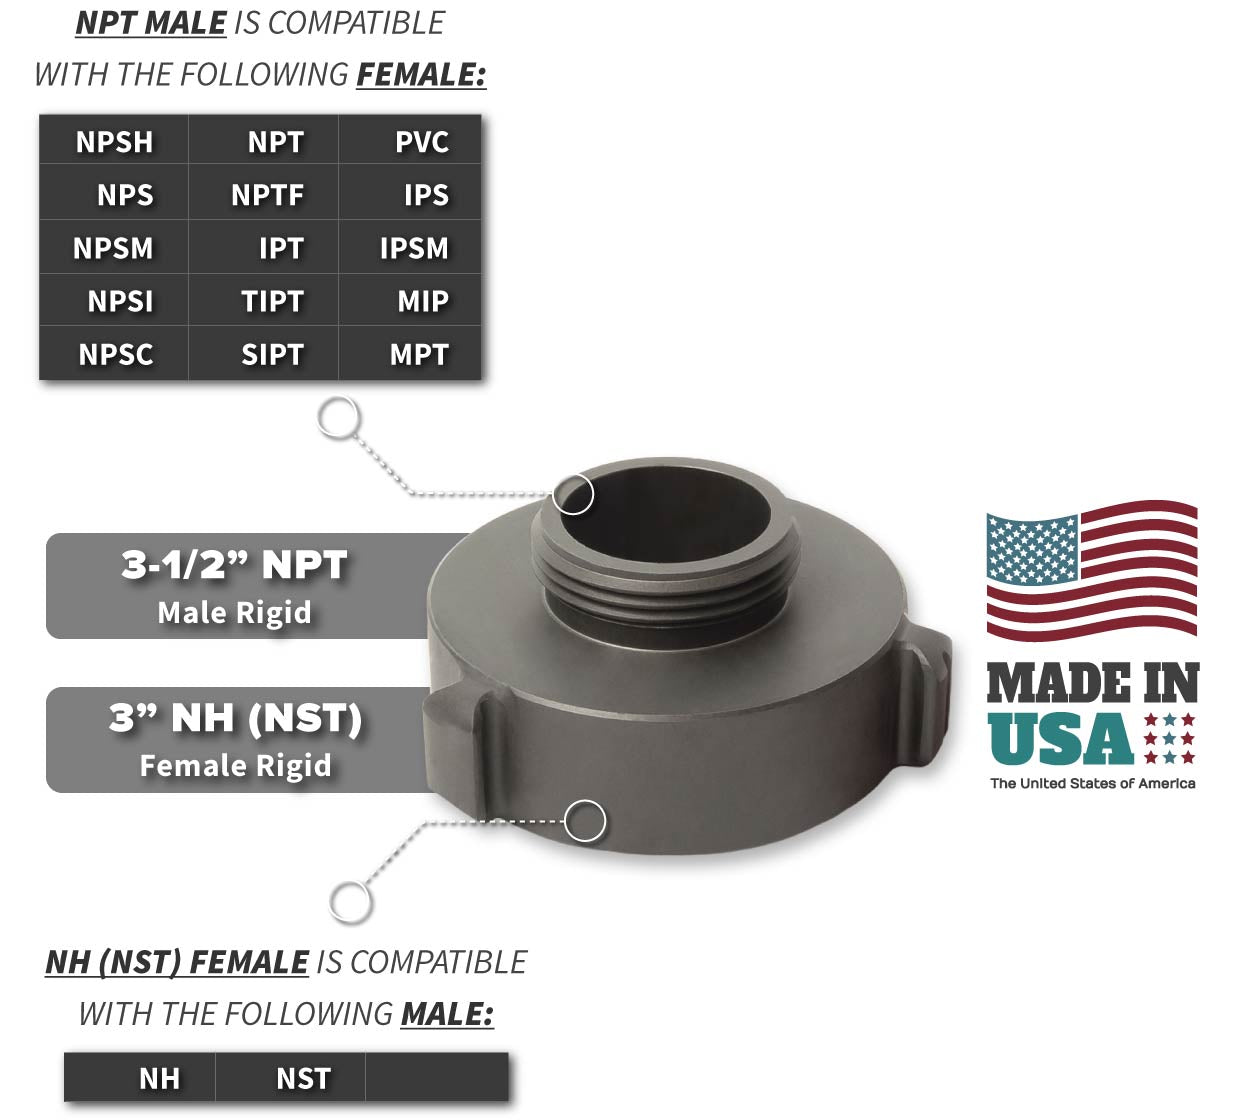 3 Inch NH-NST Female x 3.5 Inch NPT Male Compatibility Thread Chart